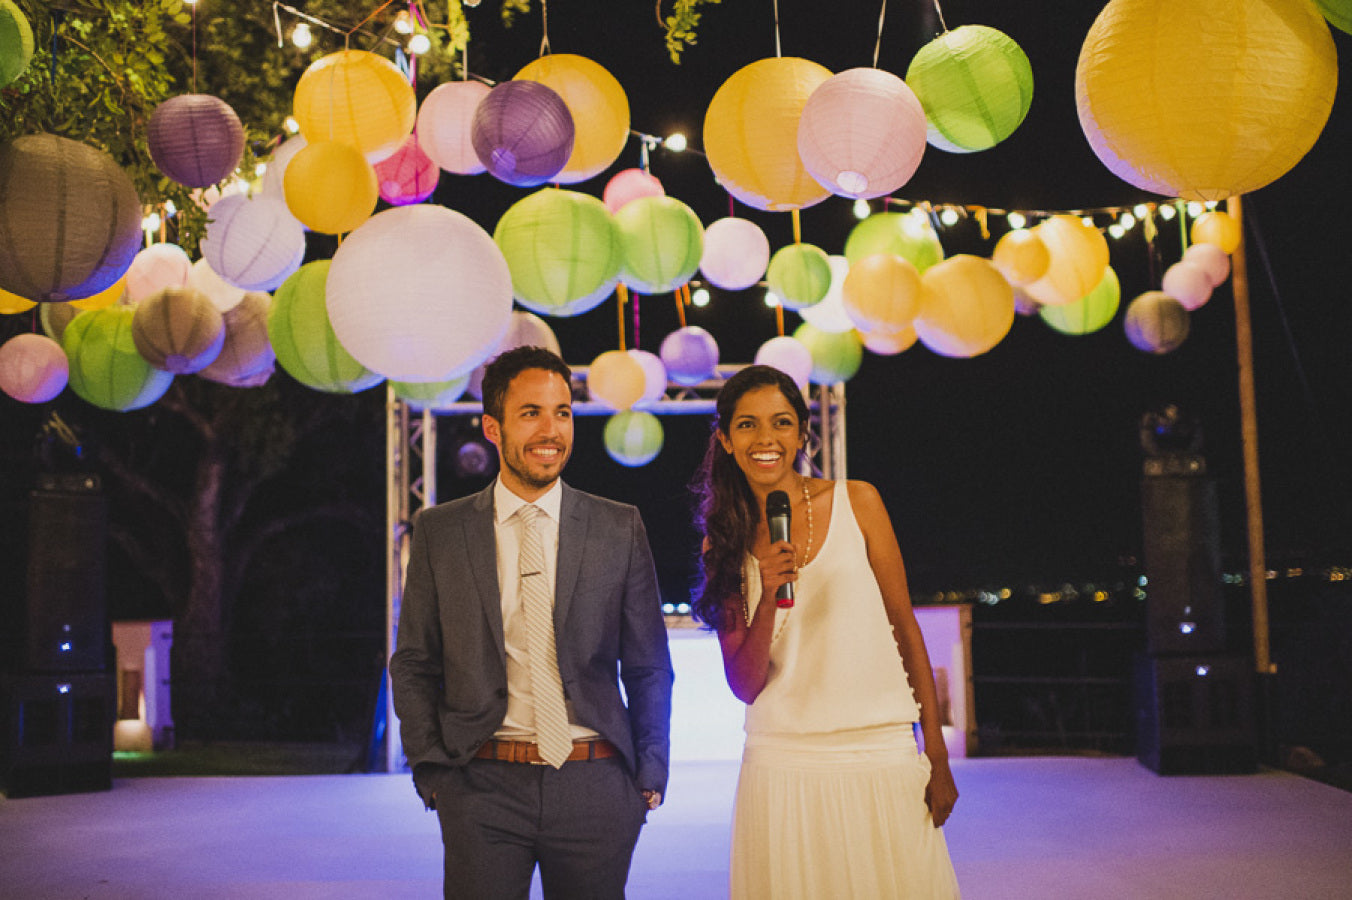 Wedding Dance Floor Ideas that Will Make You Shake it Like a Polaroid